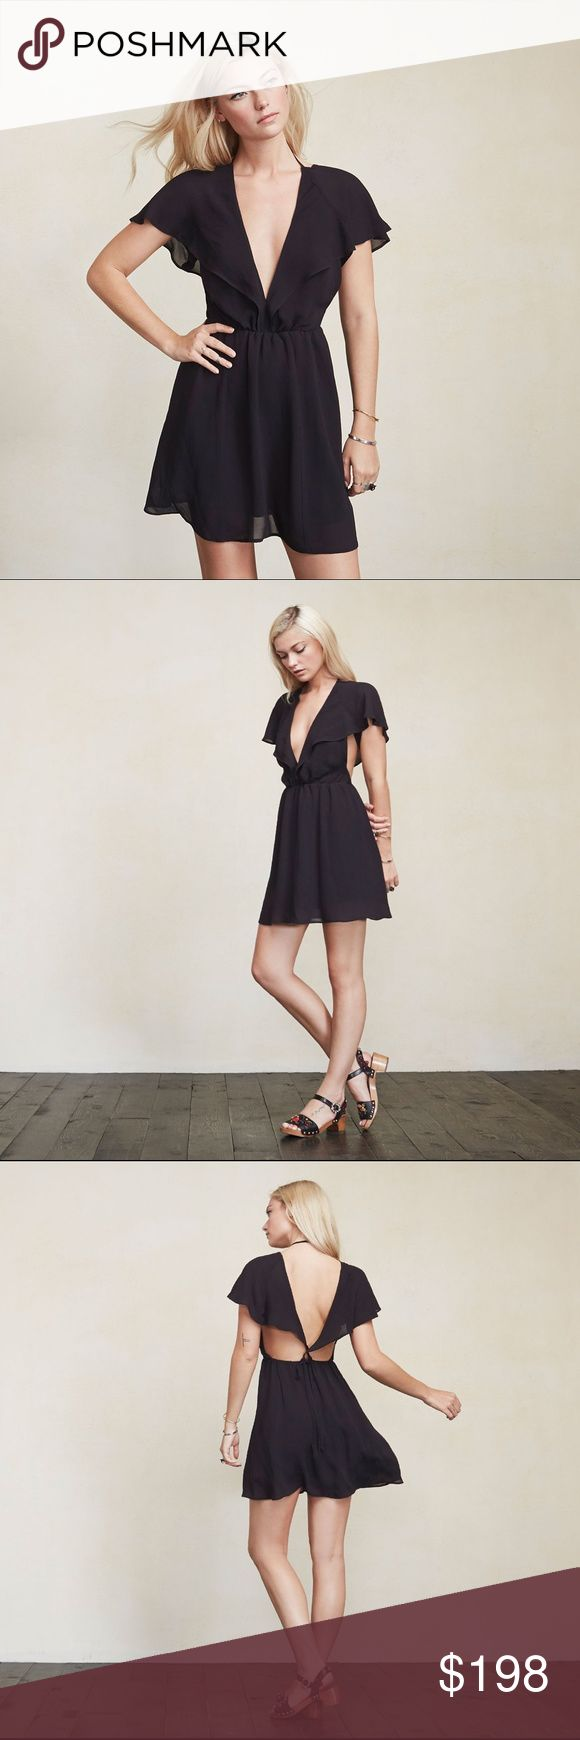 Reformation Bristol Dress - Black / 2 Little dresses go with every mood. The Bristol Dress will emotionally support you no matter what's going on. It's clothing therapy, meaning when you see how good you look in it you'll be all smiles. This is a georgette mini dress with a plunging V neckline (fyi there's a hook/eye closure in case you'd like a bit less of a plunge), sheer cape sleeves, and adjustable tie straps in the back. It's fitted at the waist but the skirt can move. Hook/zip closure…